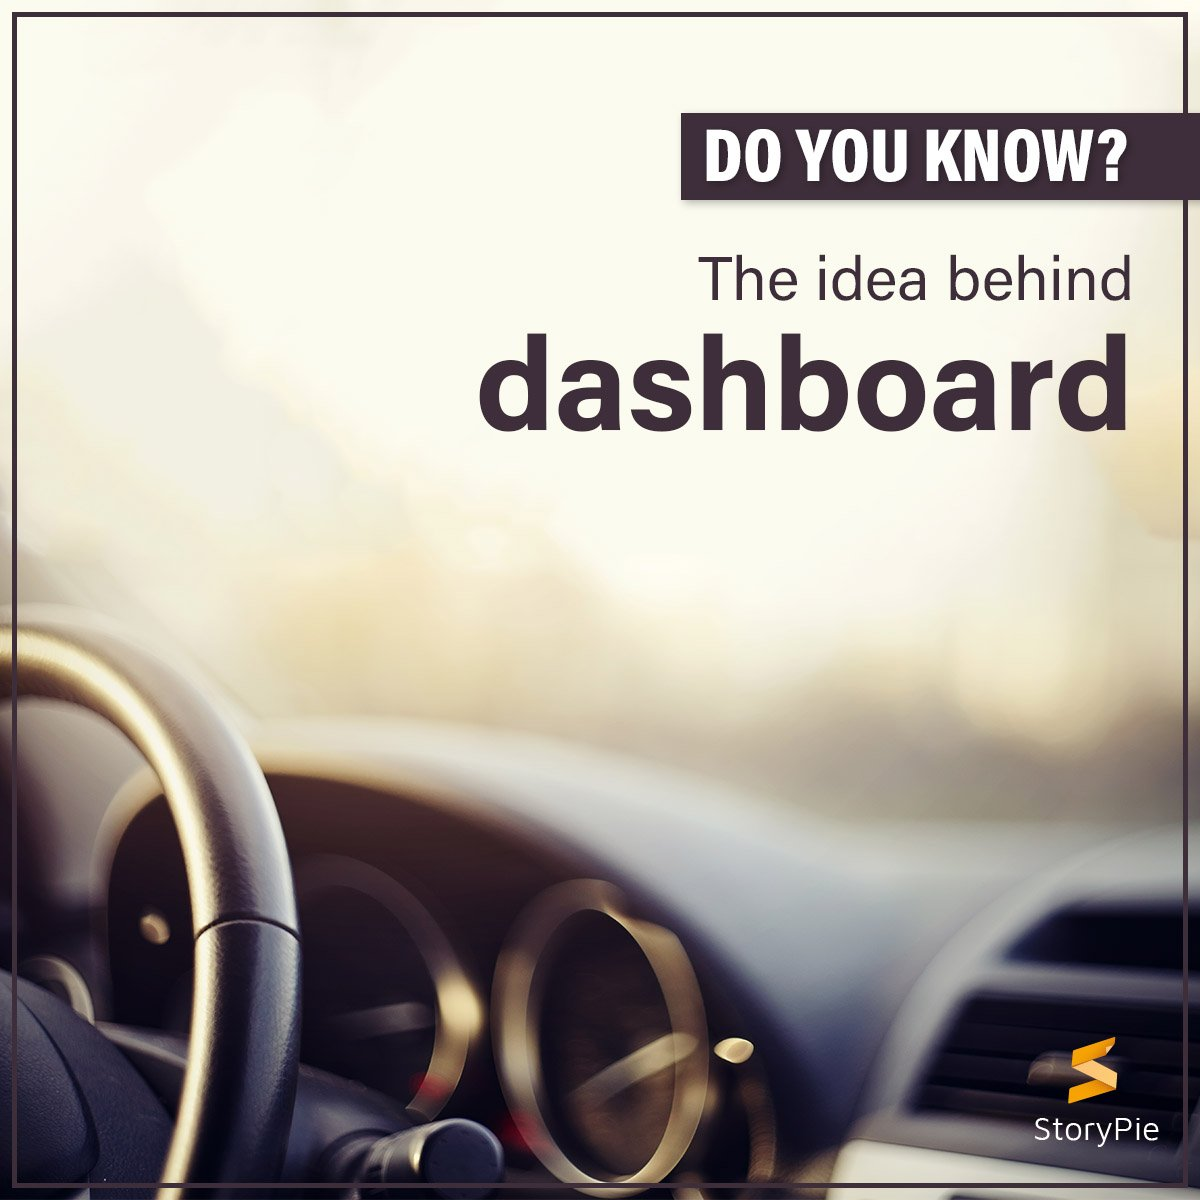 The idea behind dashboard in cars was originally inspired from horse-drawn carriages to prevent mud splattering on the driver. #DidYouKnow #WhatTheFact #StoryPie